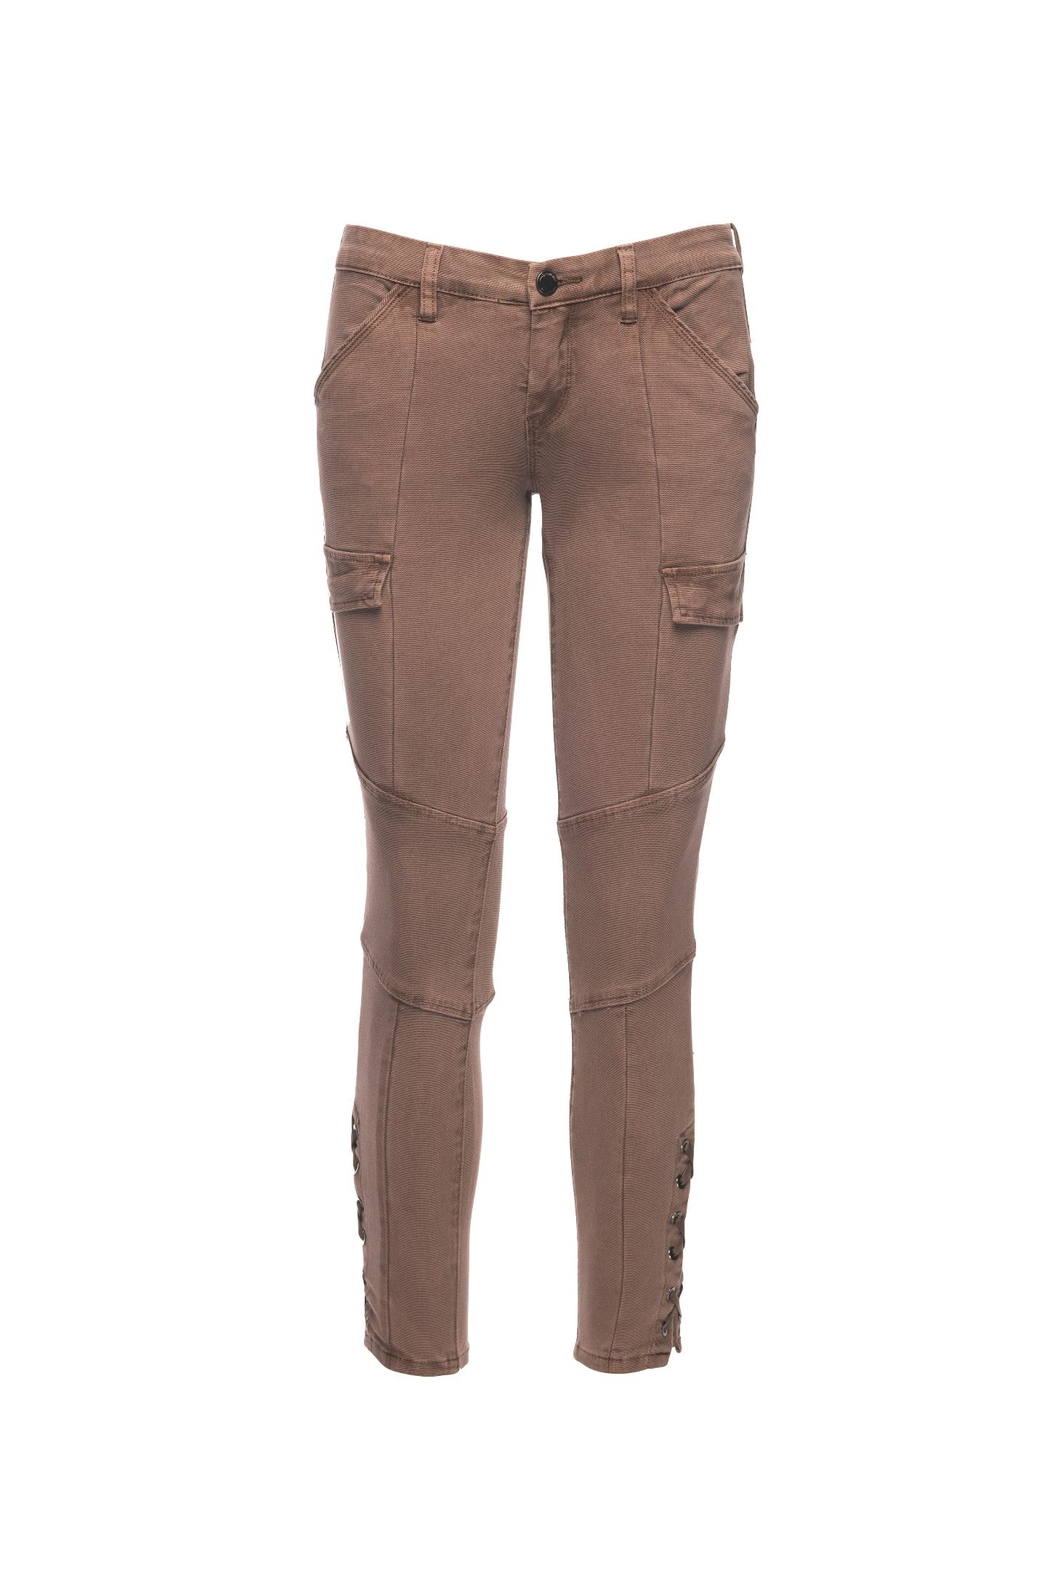 Blank NYC Taupes Off Cargo Jeans - Main Image